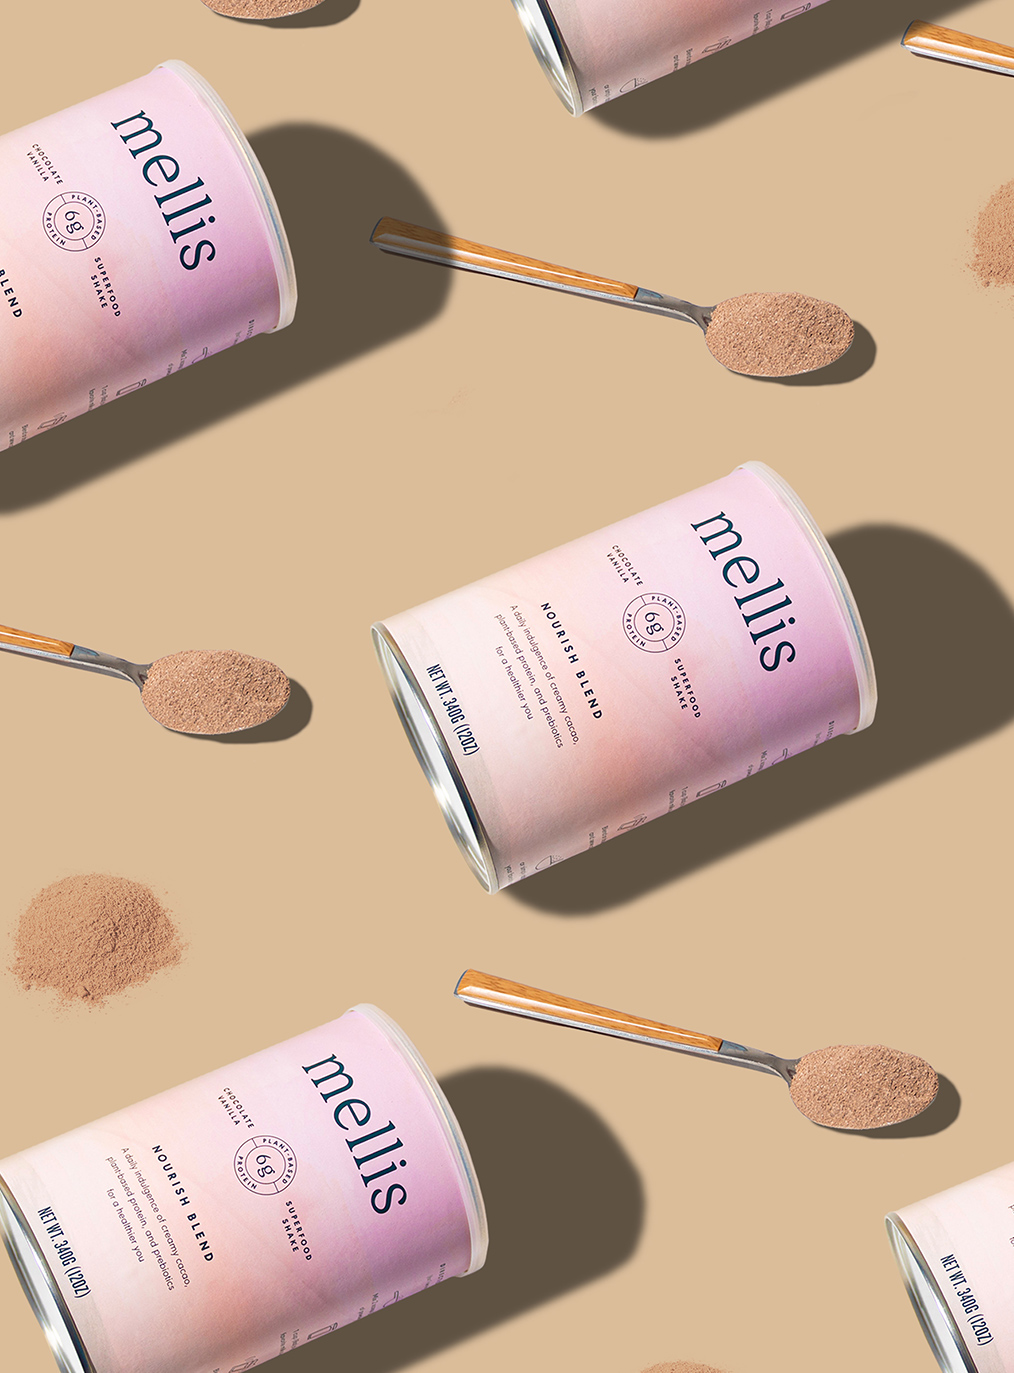 Mellis Superfood Shake Brand Identity and Packaging Design by Macaroni Creative